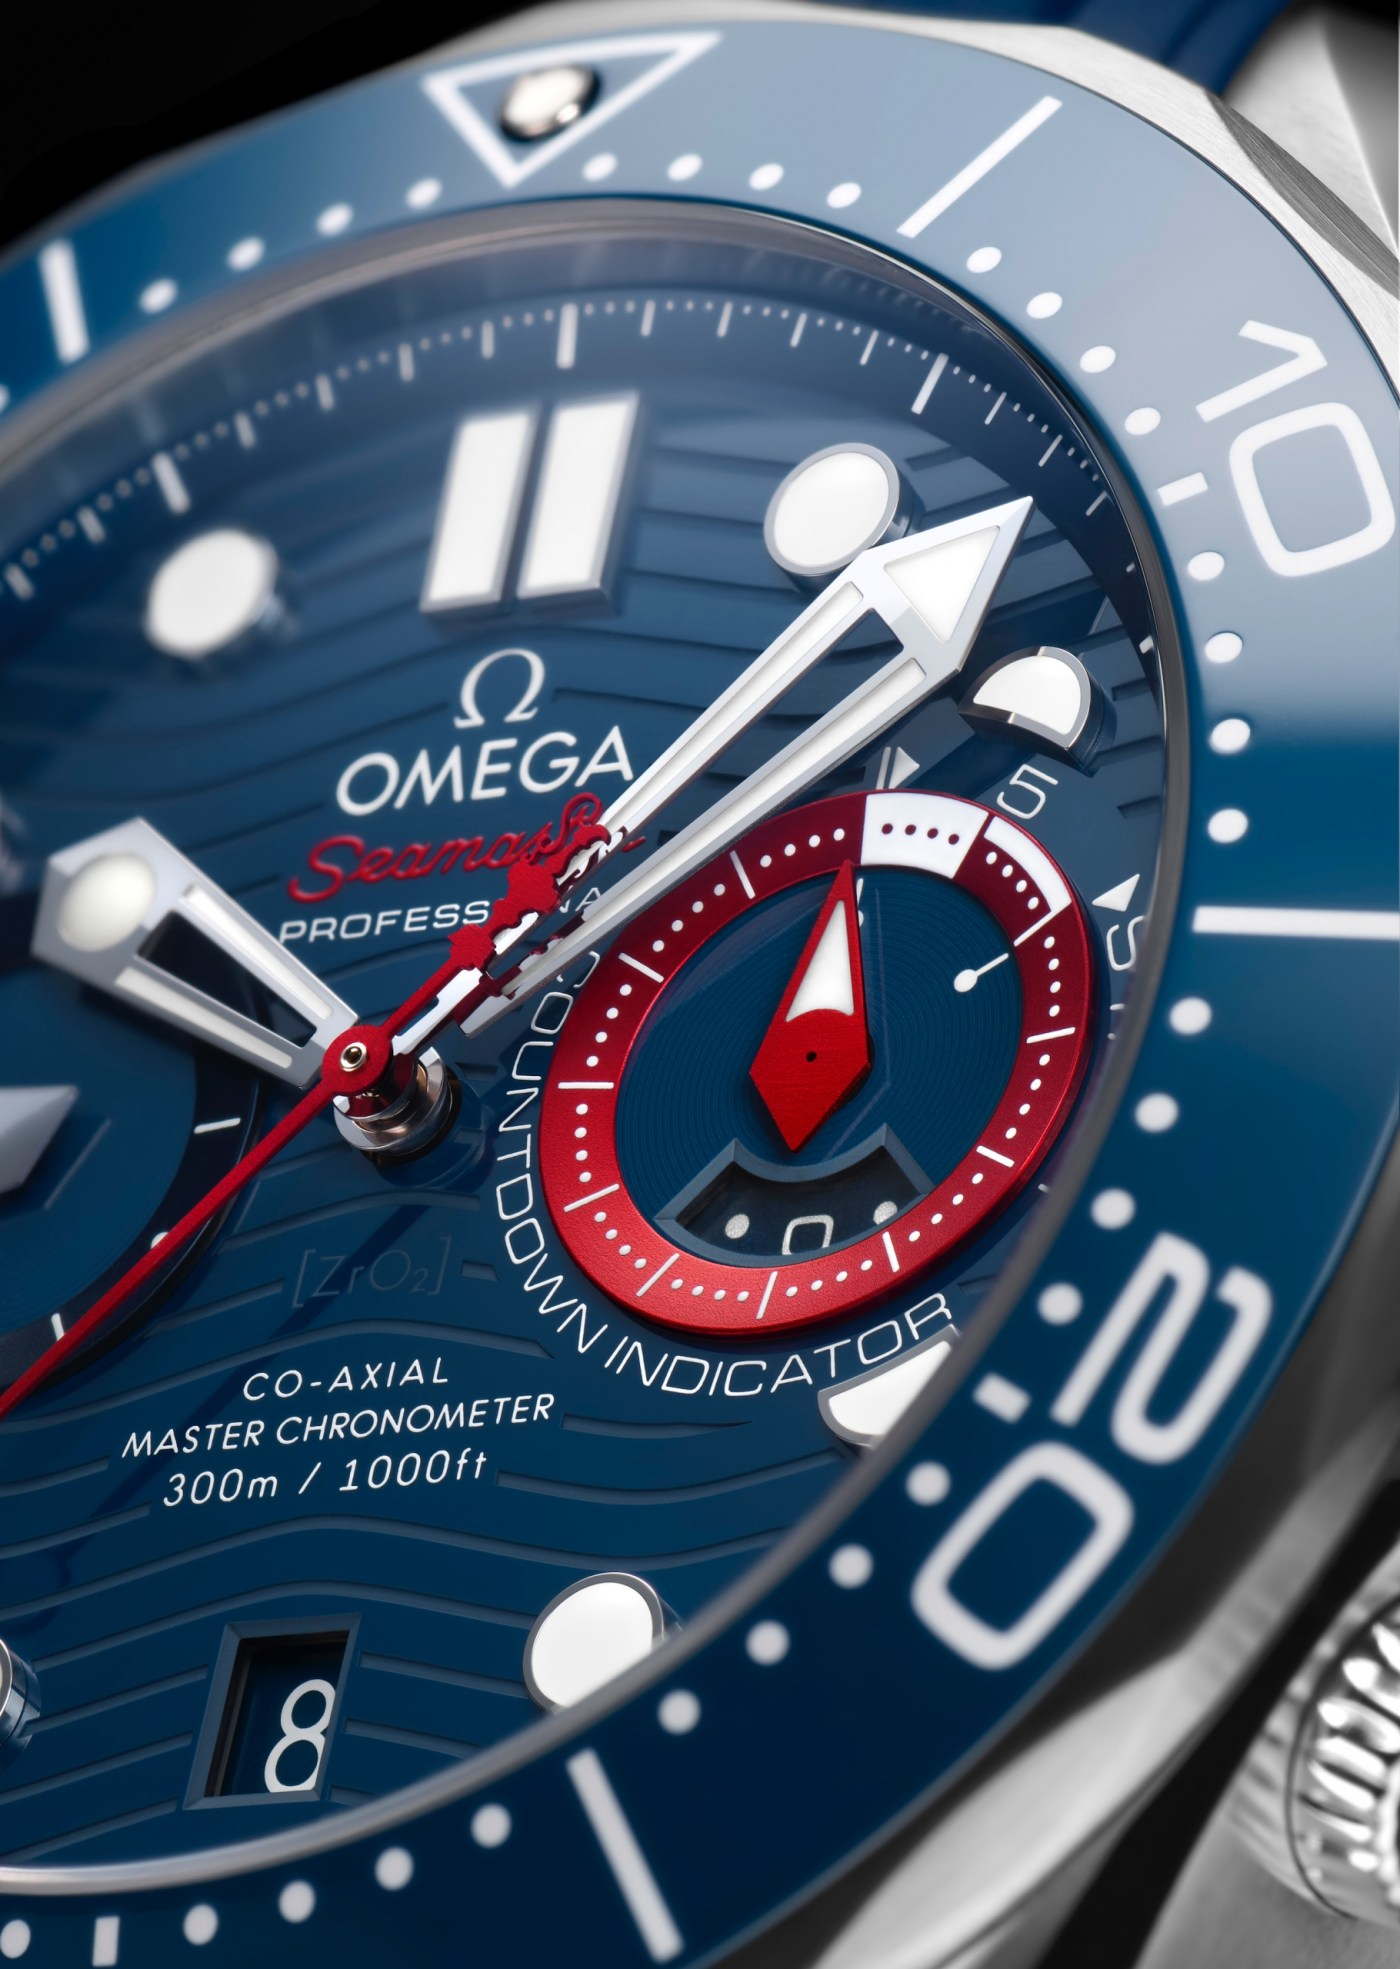 Omega Seamaster Diver 300M America's Cup Chronograph 210.30.44.51.03.002